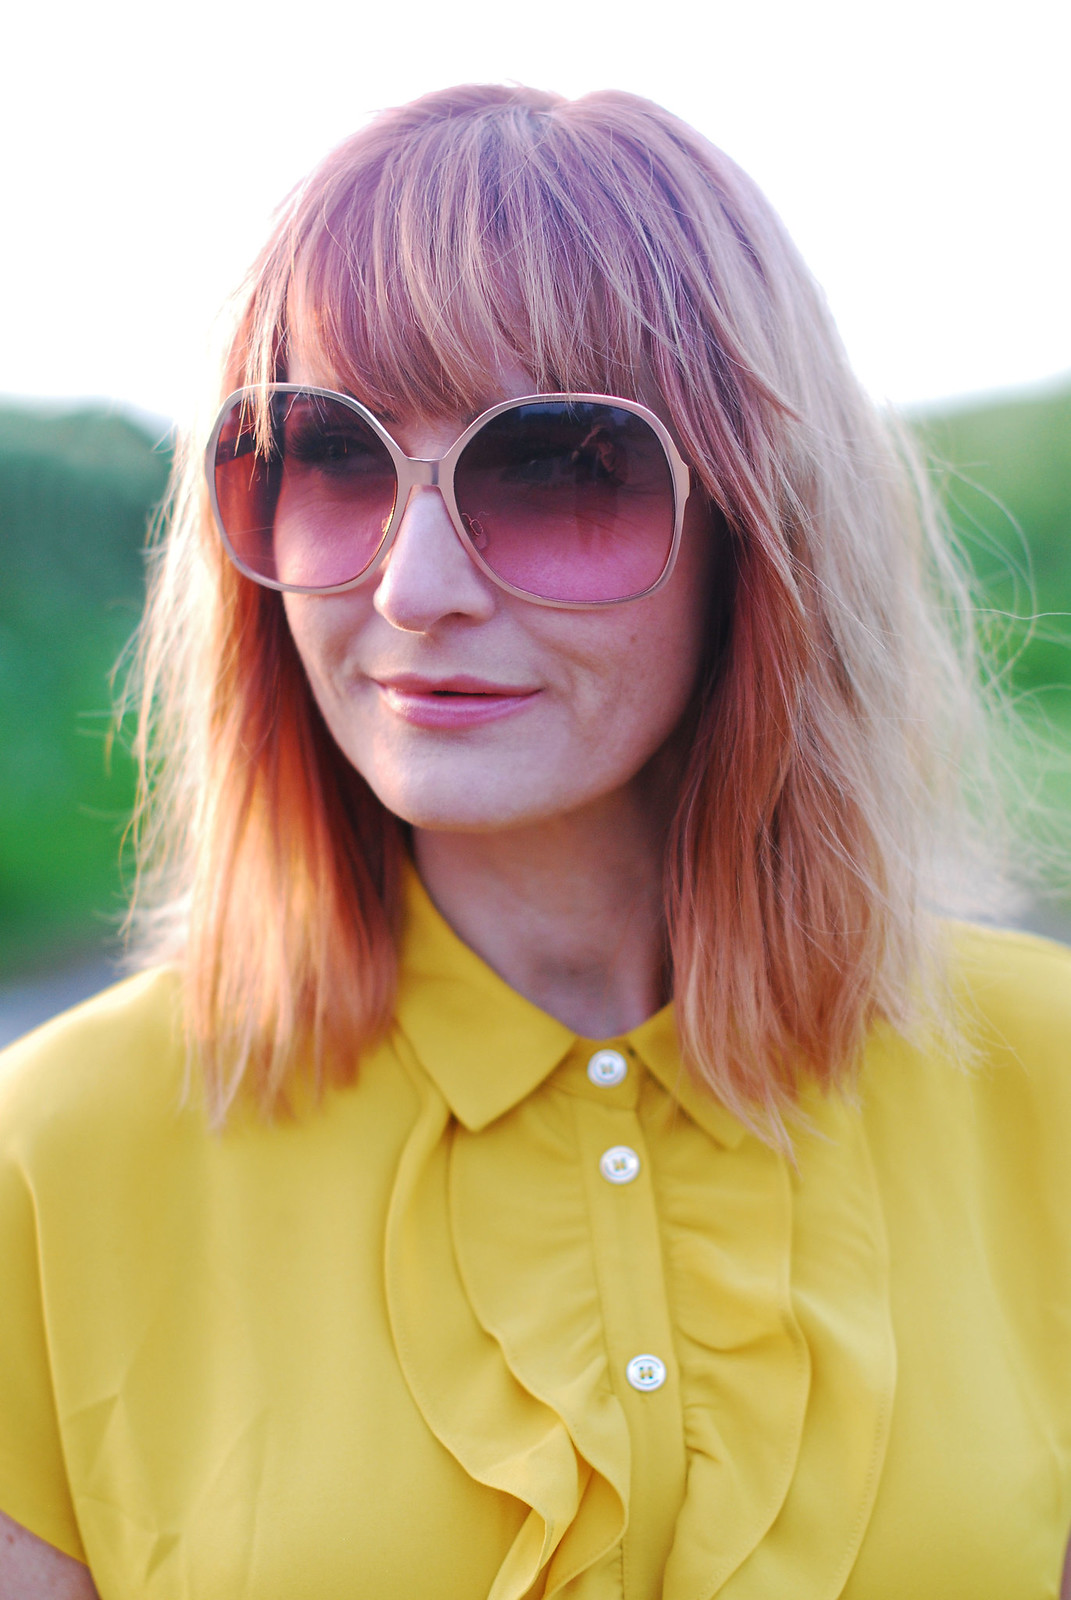 Summer brights: Ruffled yellow blouse, oversized 70s sunglasses | Not Dressed As Lamb